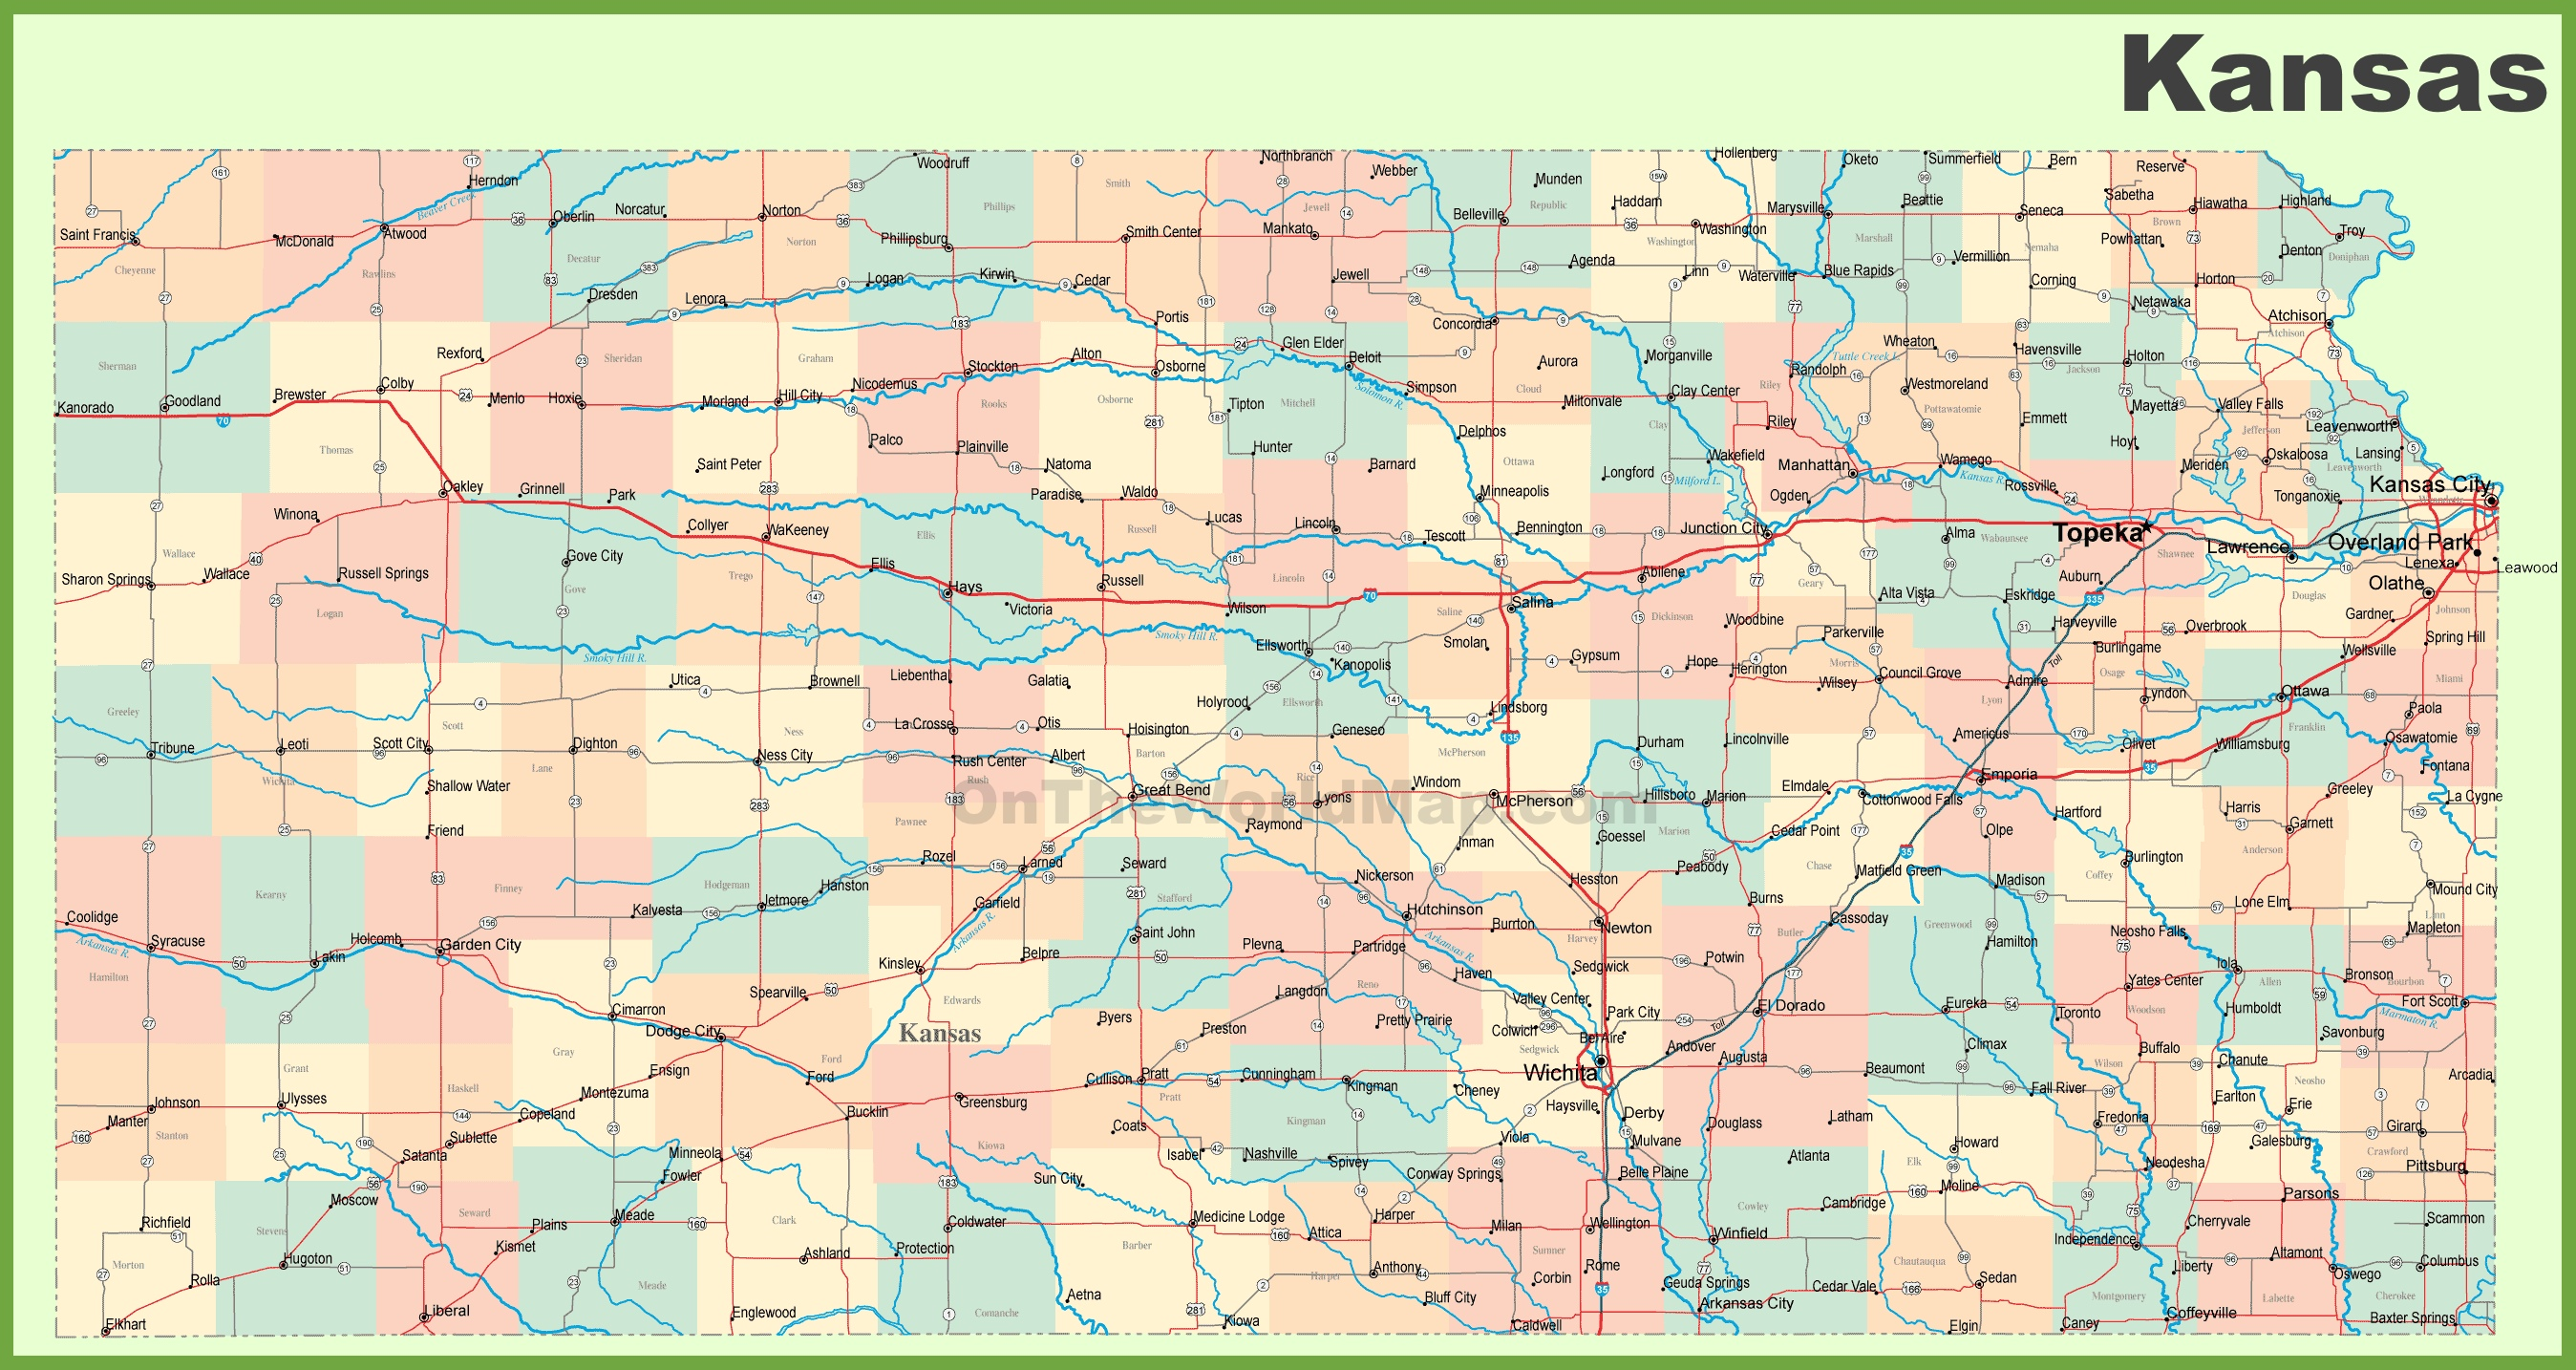 road map of kansas with cities